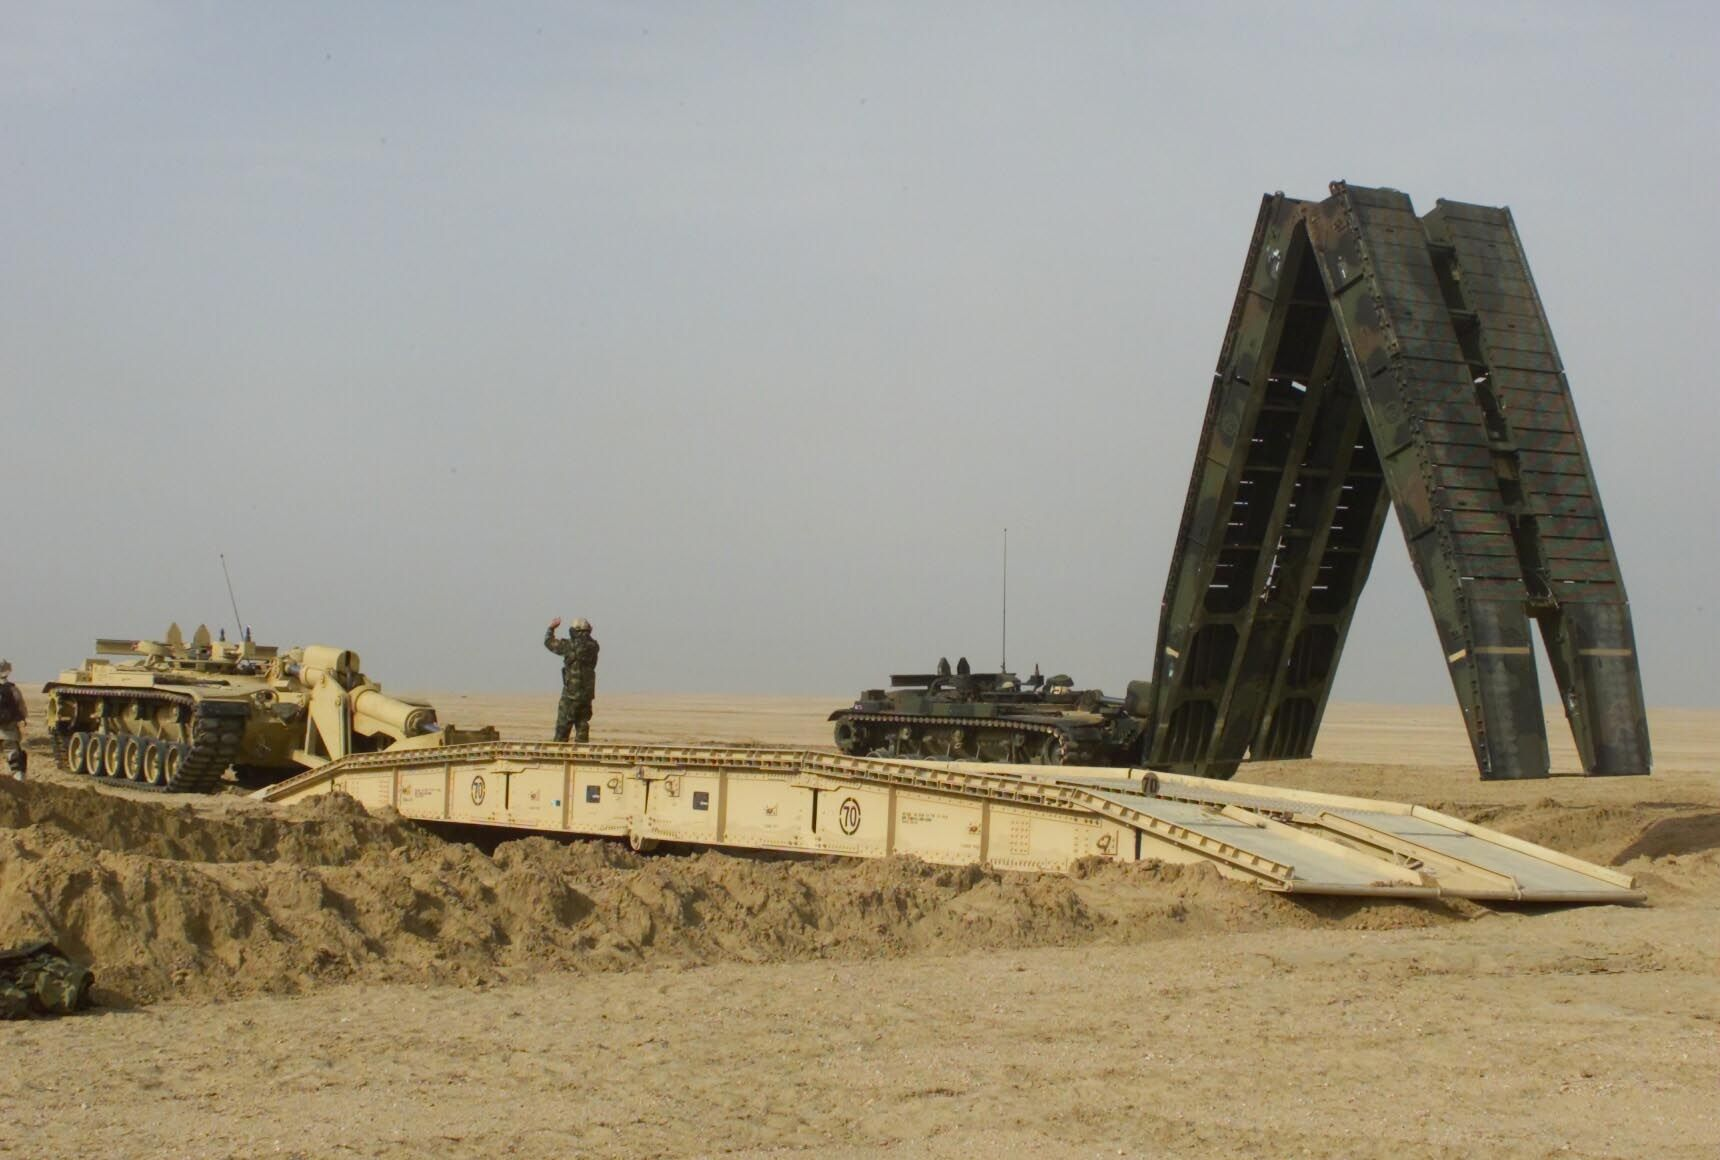 M60 AVLB (Armored Vehicle Launched Bridge) - One of the